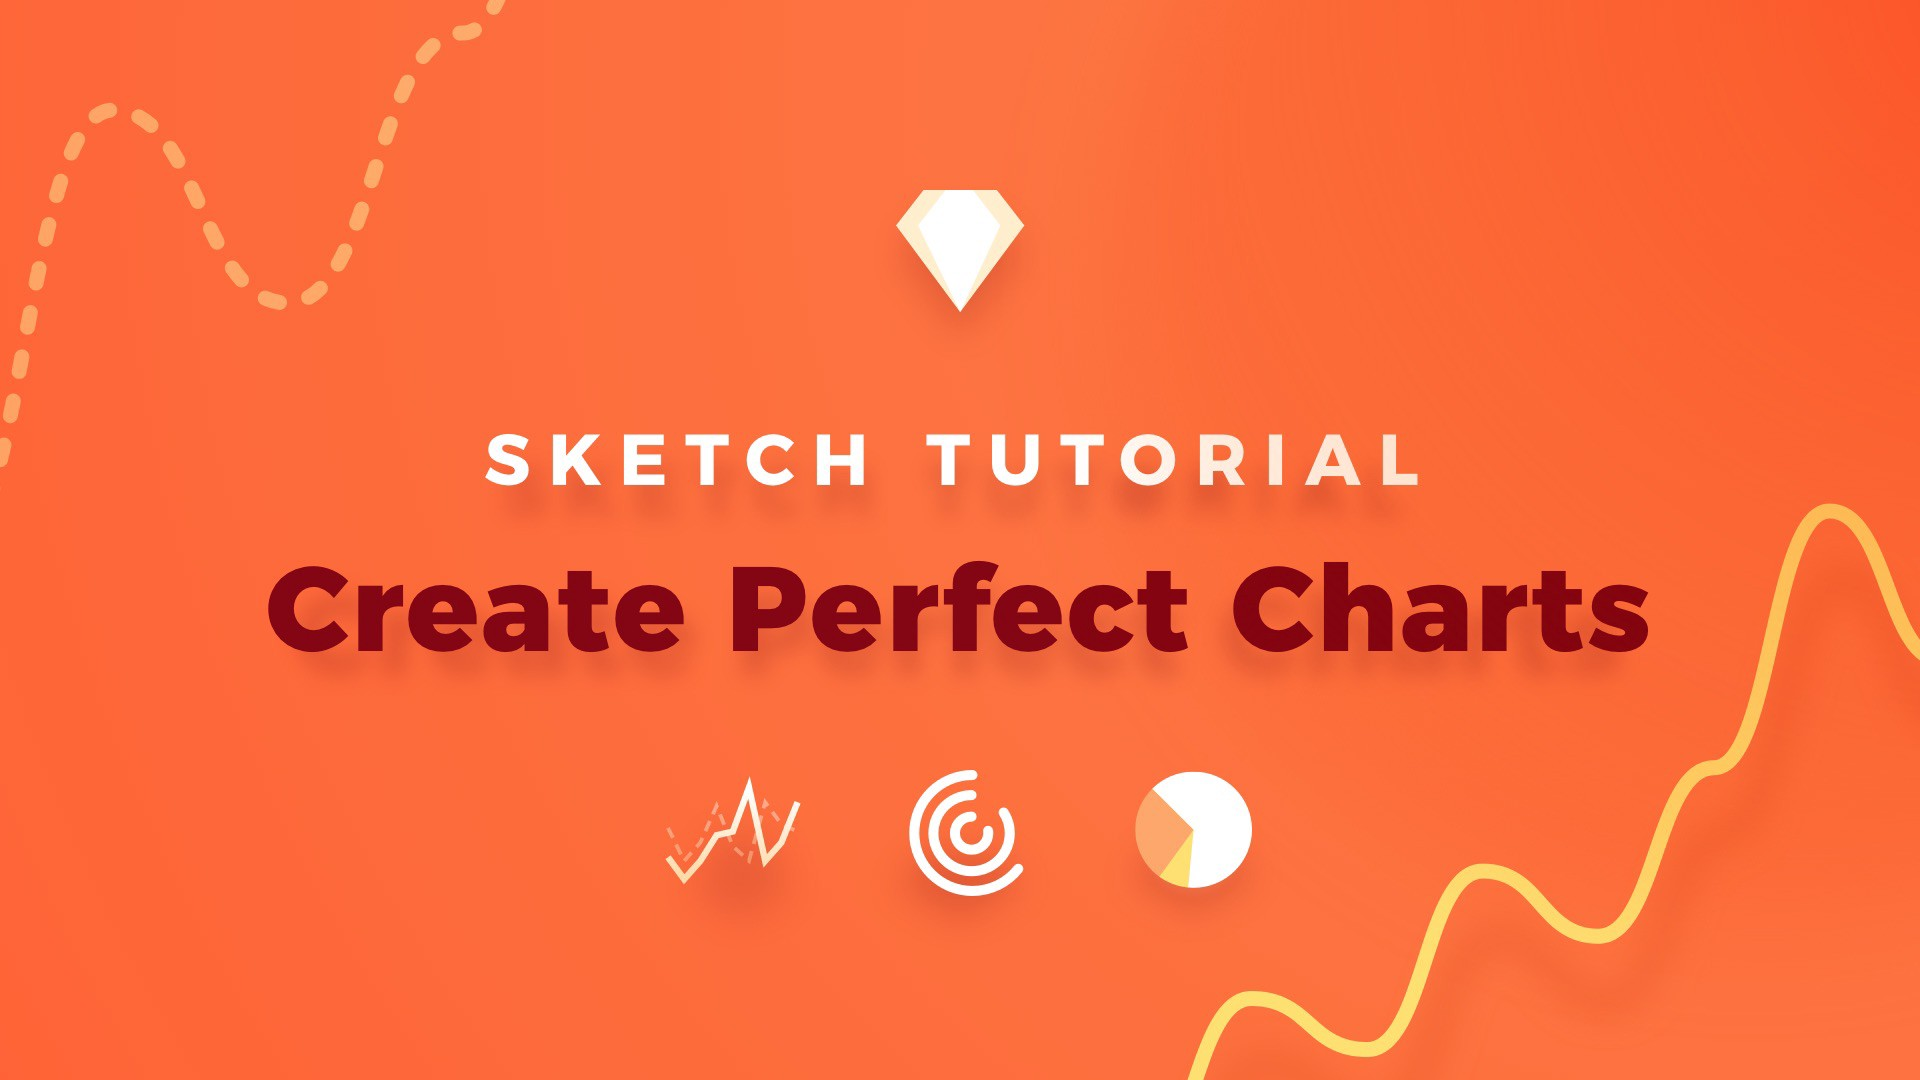 Sketch Tutorial — How to Make Perfect Charts - Design +